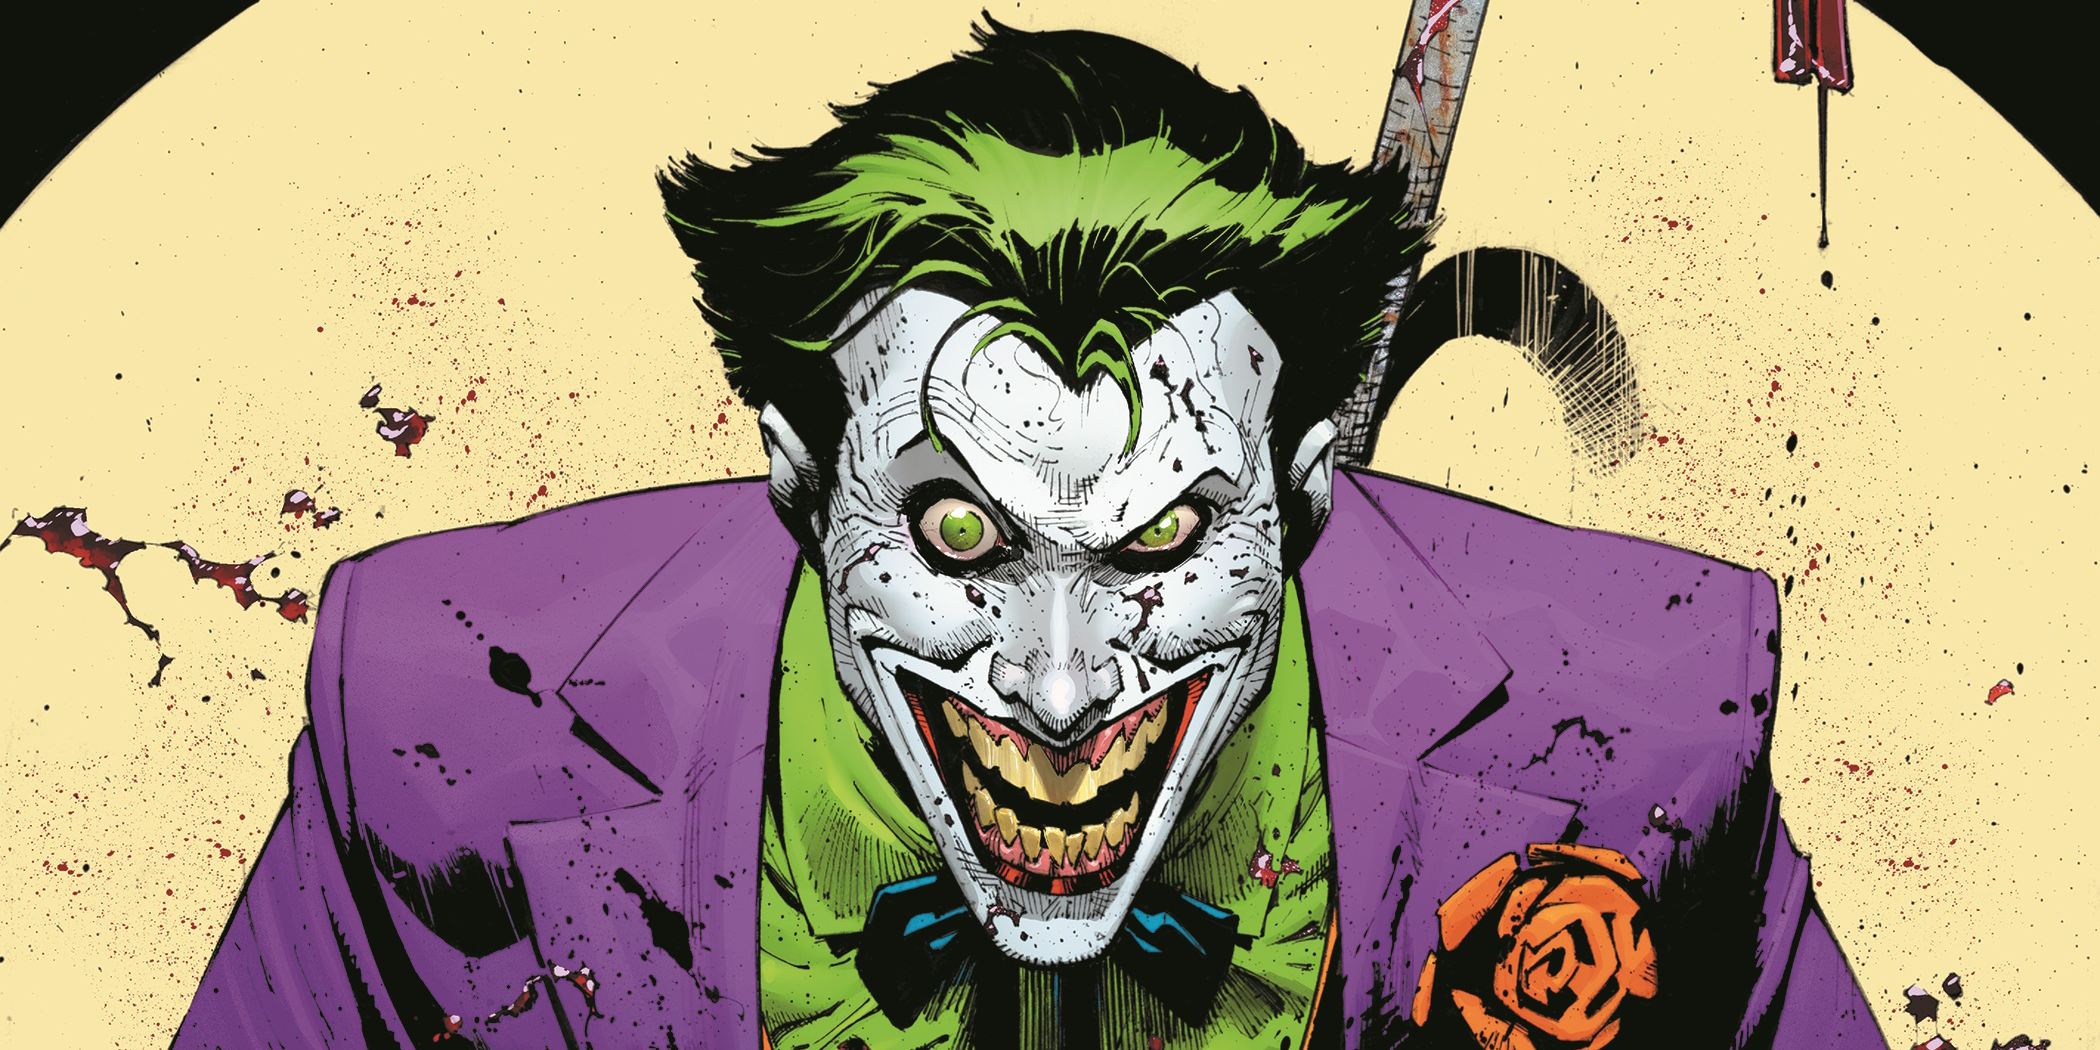 100-Page Joker Special Commemorates the Clown Prince's 80th Anniversary